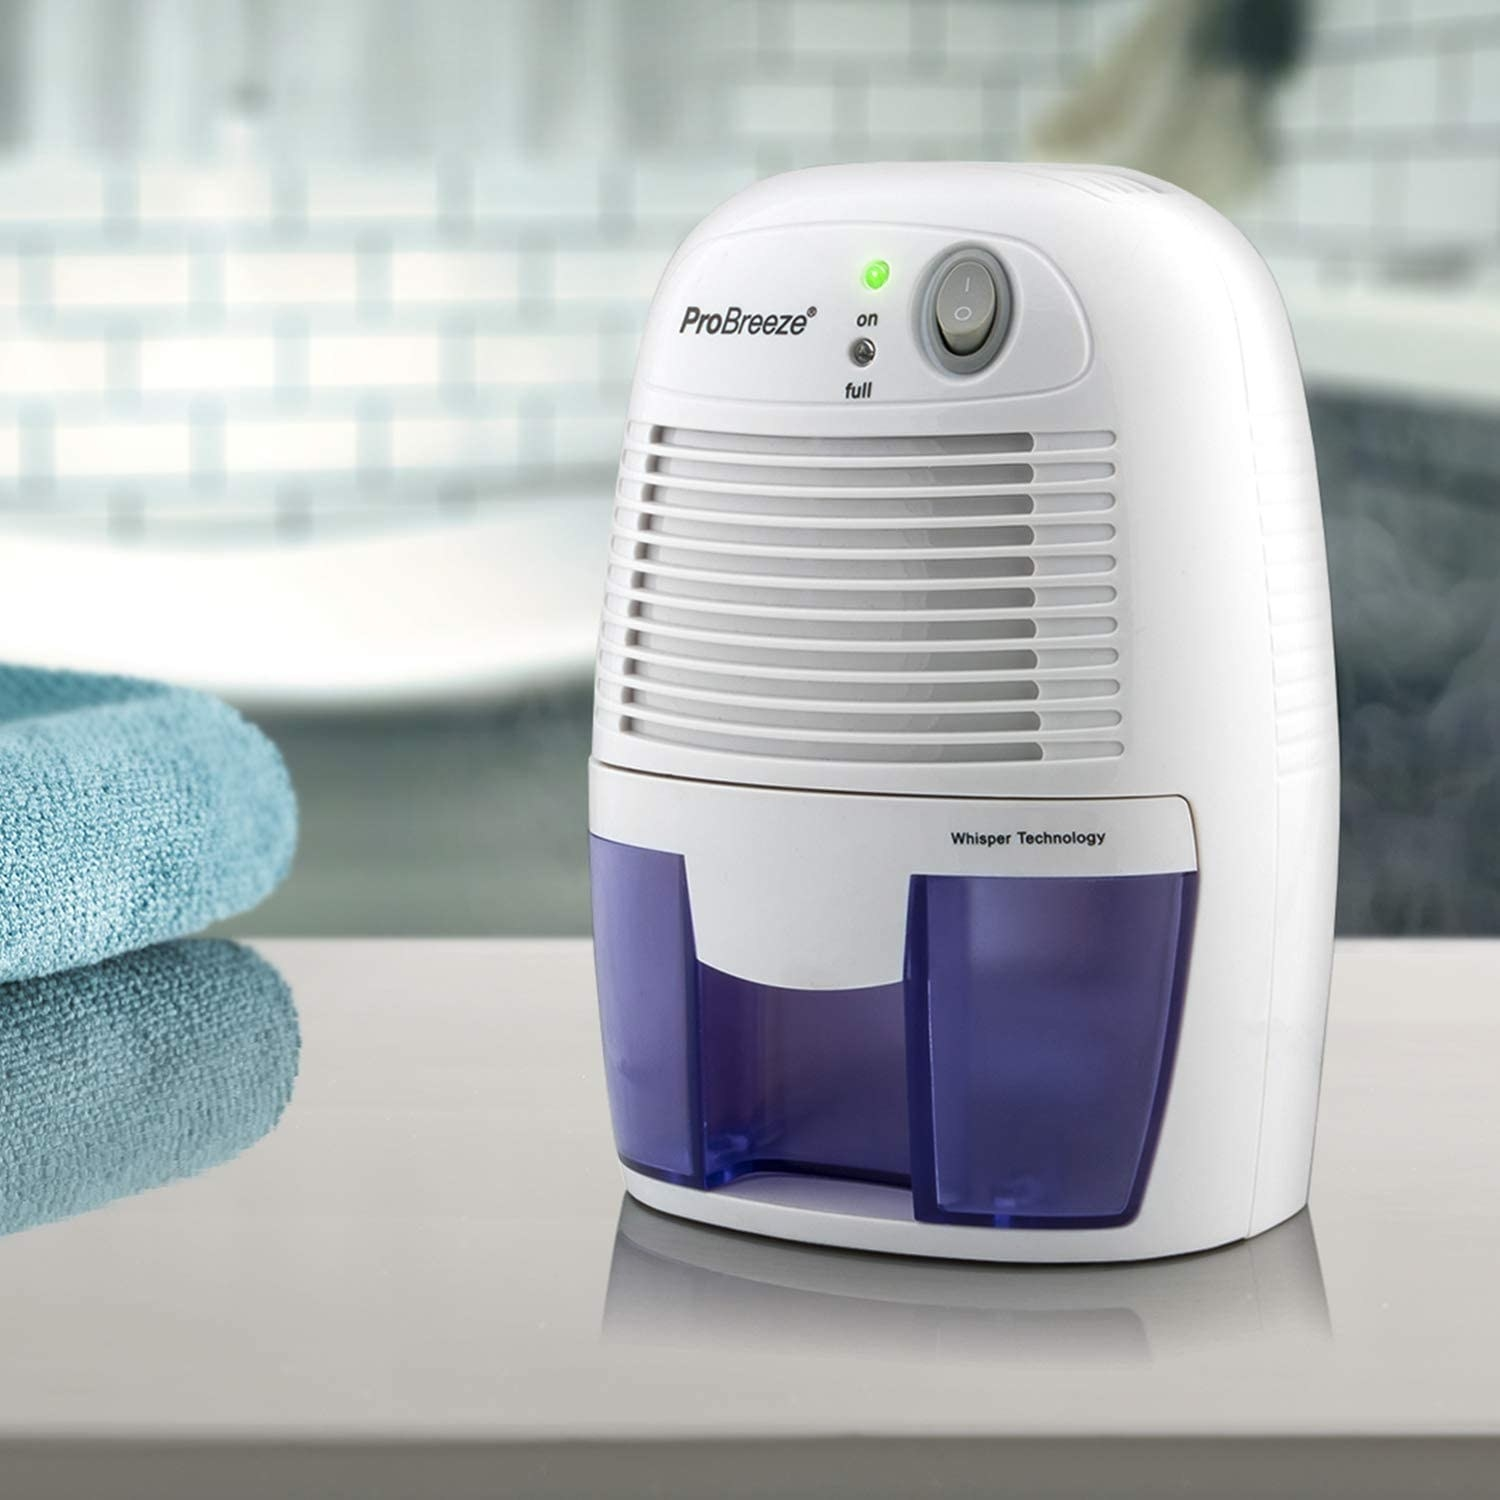 The white and blue dehumidifier